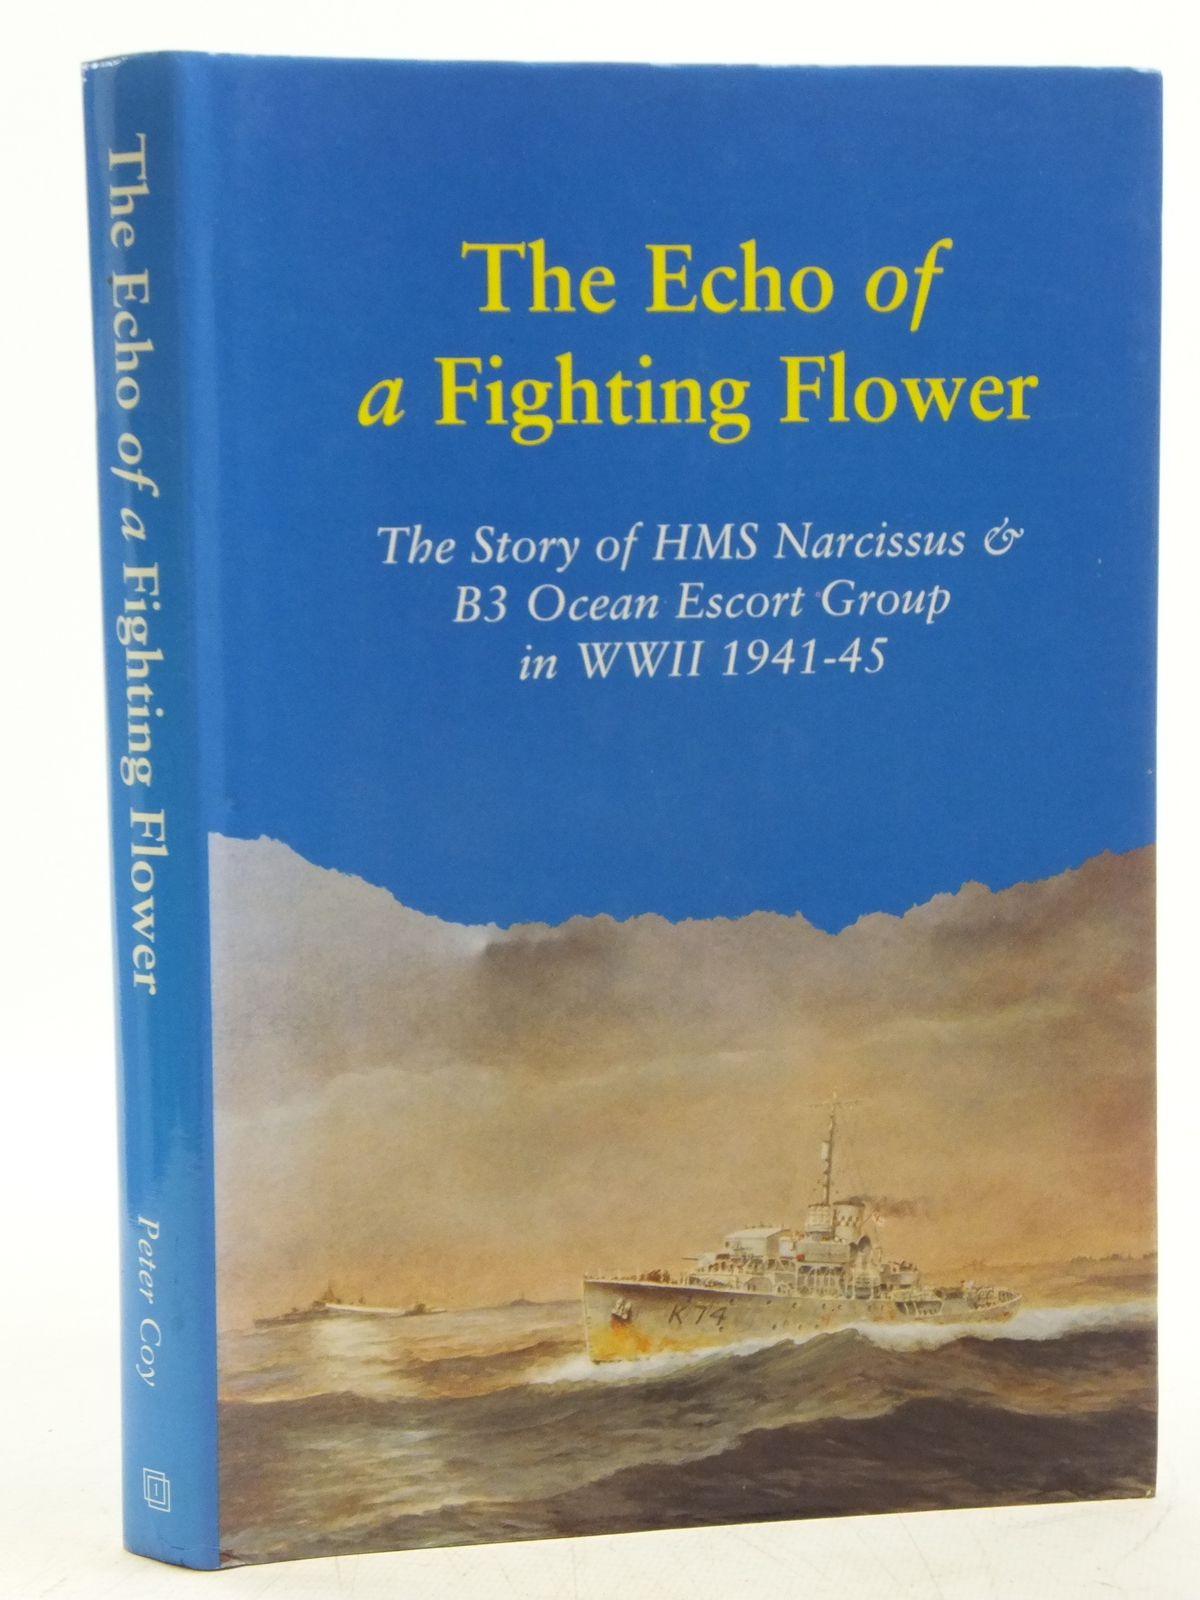 Photo of THE ECHO OF A FIGHTING FLOWER written by Coy, Peter published by Square One Publications (STOCK CODE: 2120152)  for sale by Stella & Rose's Books